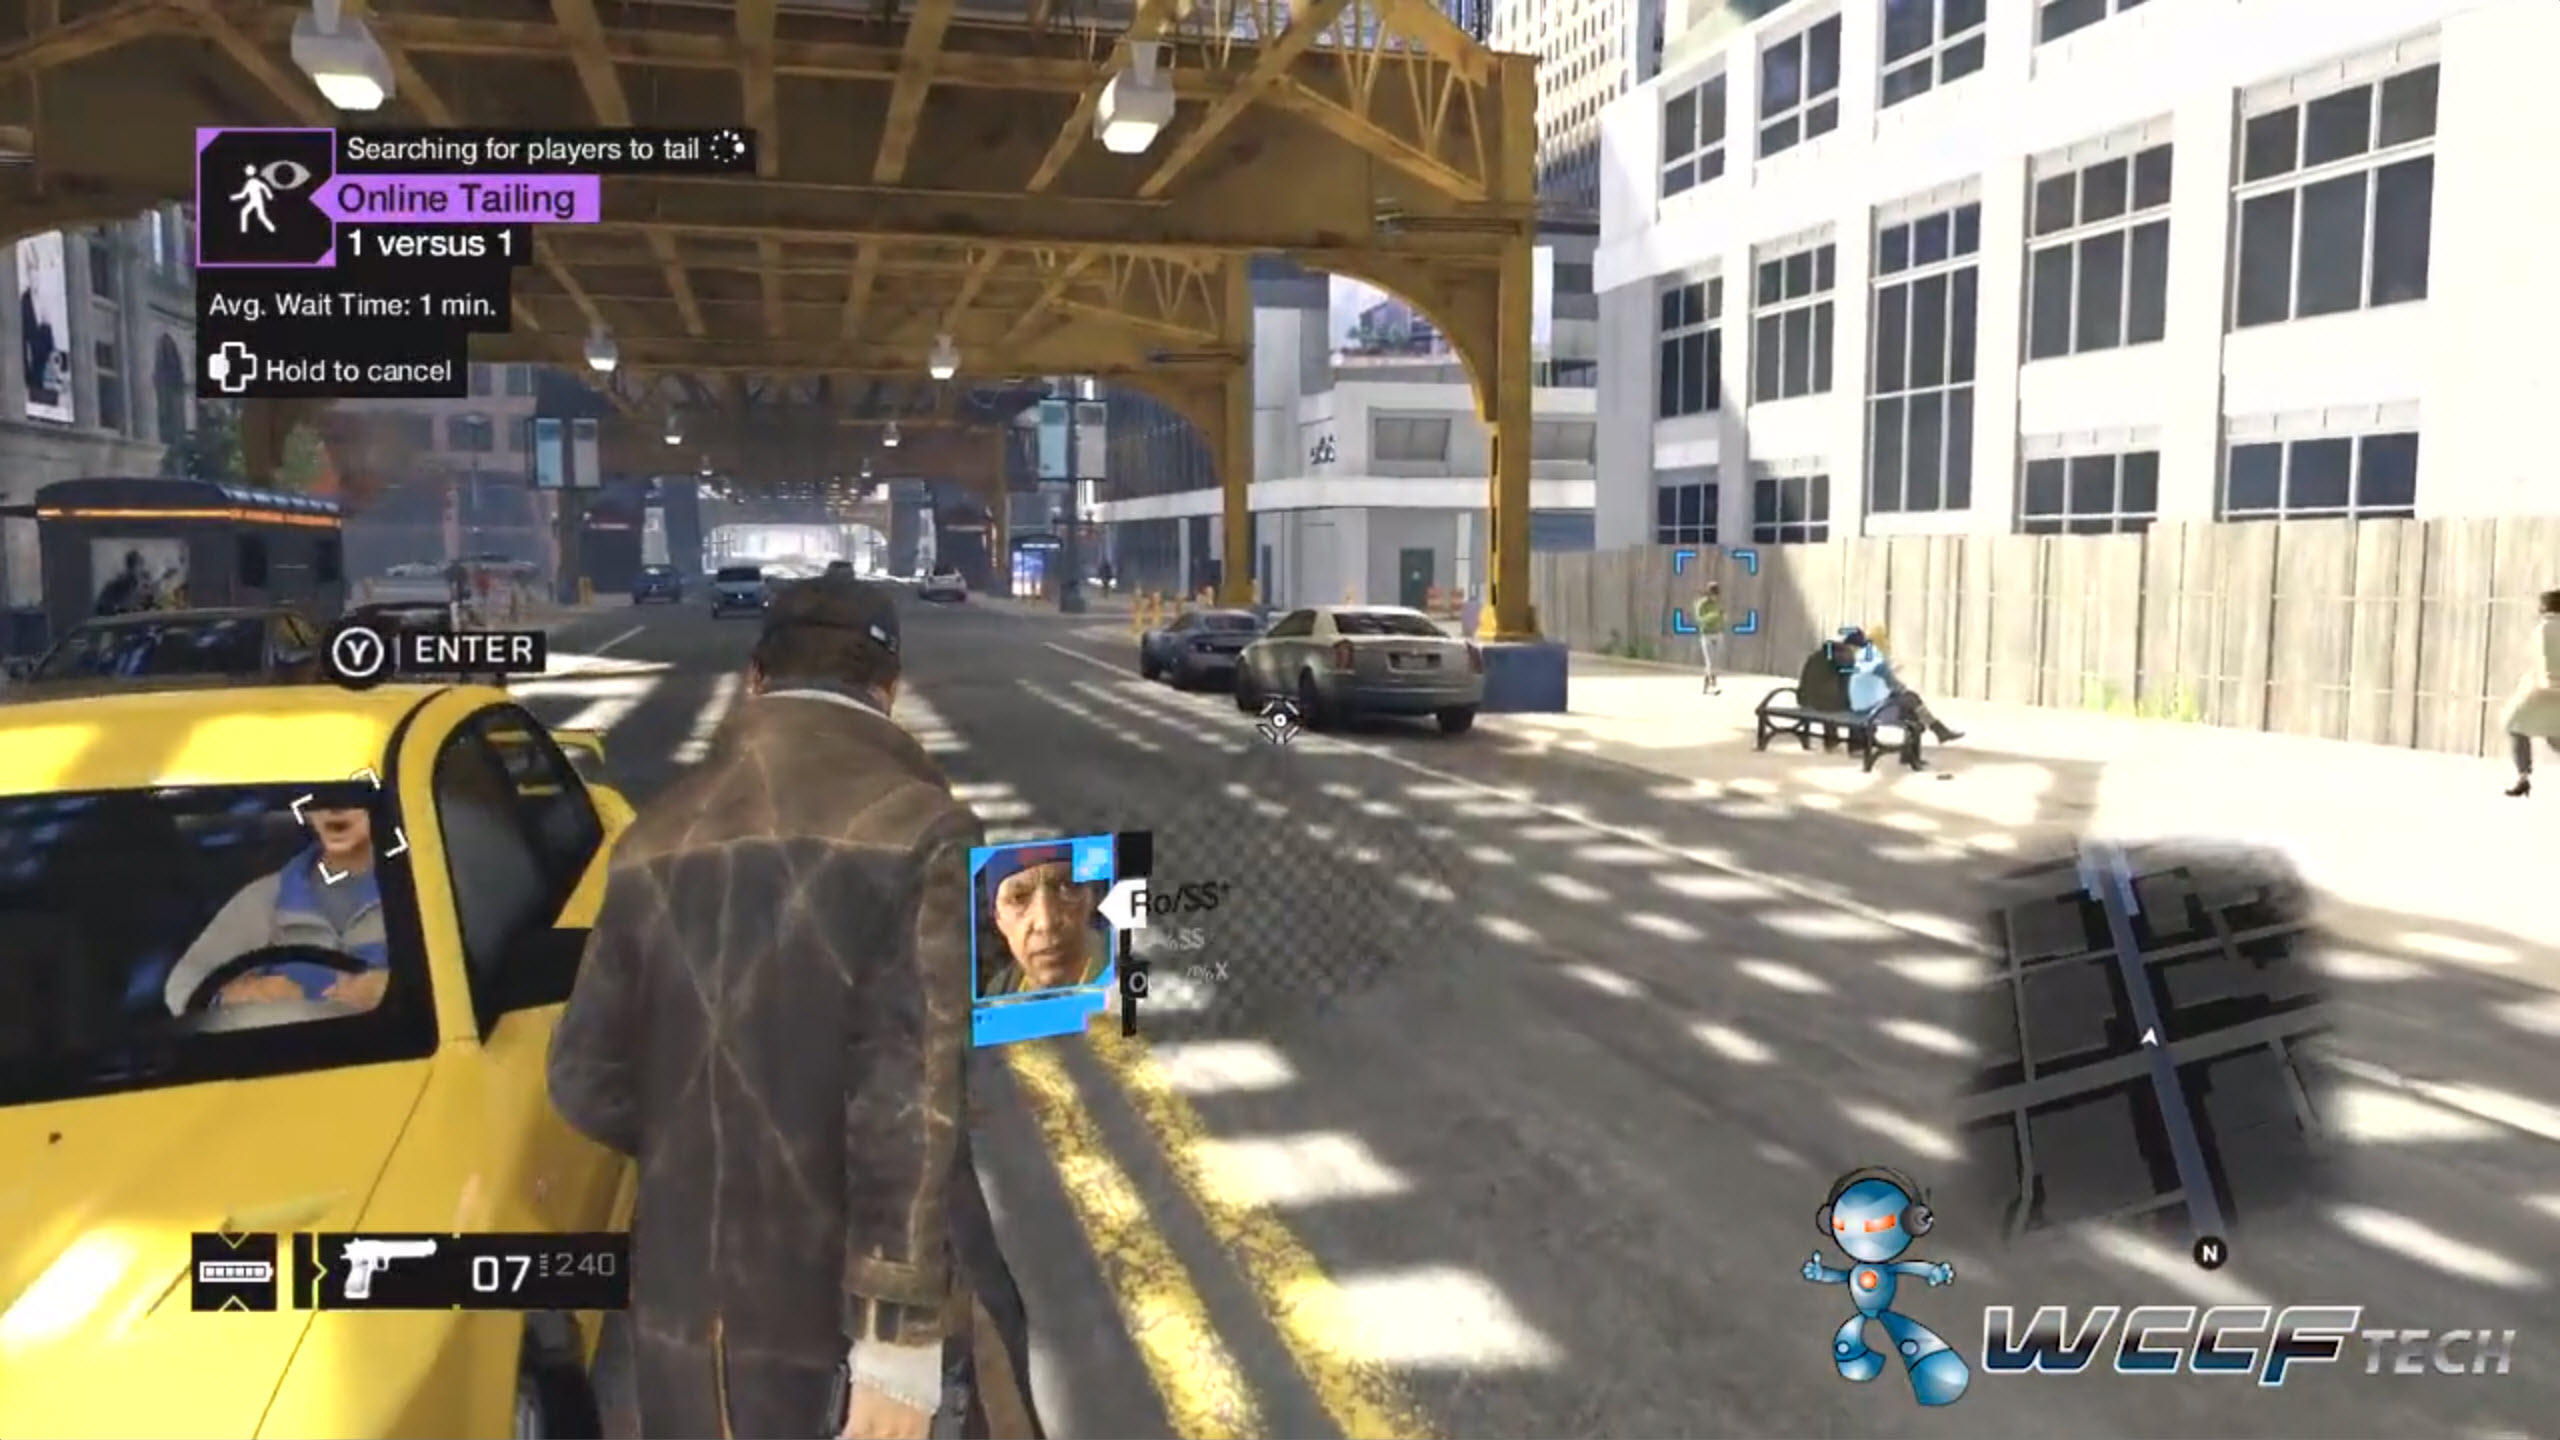 How To Get  Players Onlone Watch Dogs